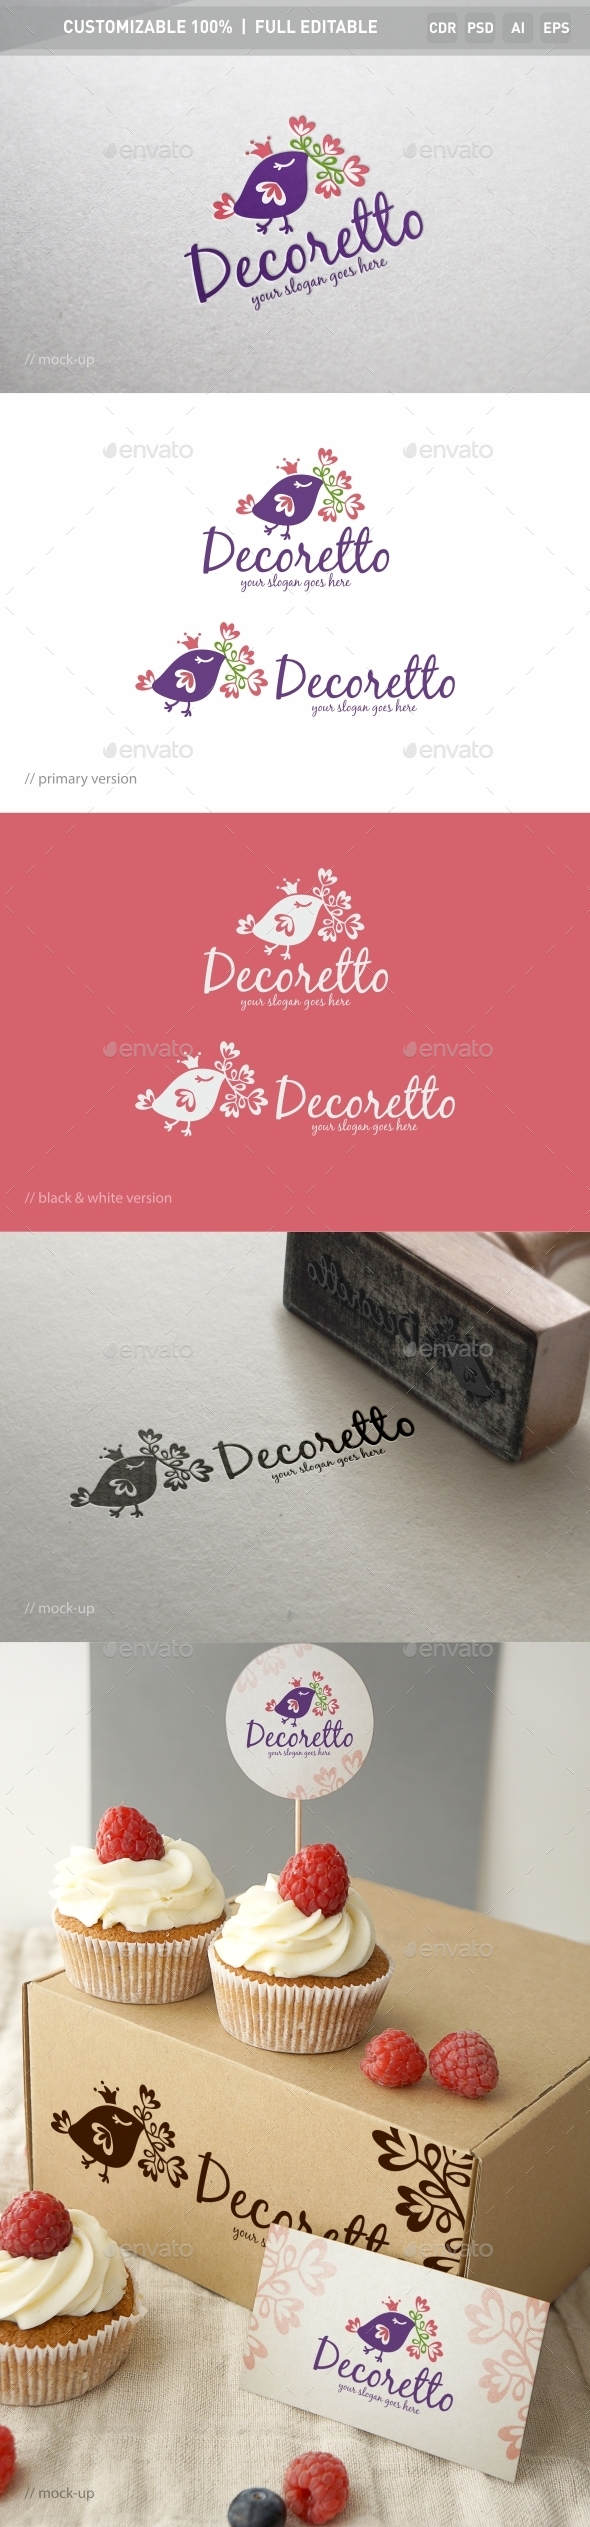 Decoratto Logo Template - Objects Logo Templates